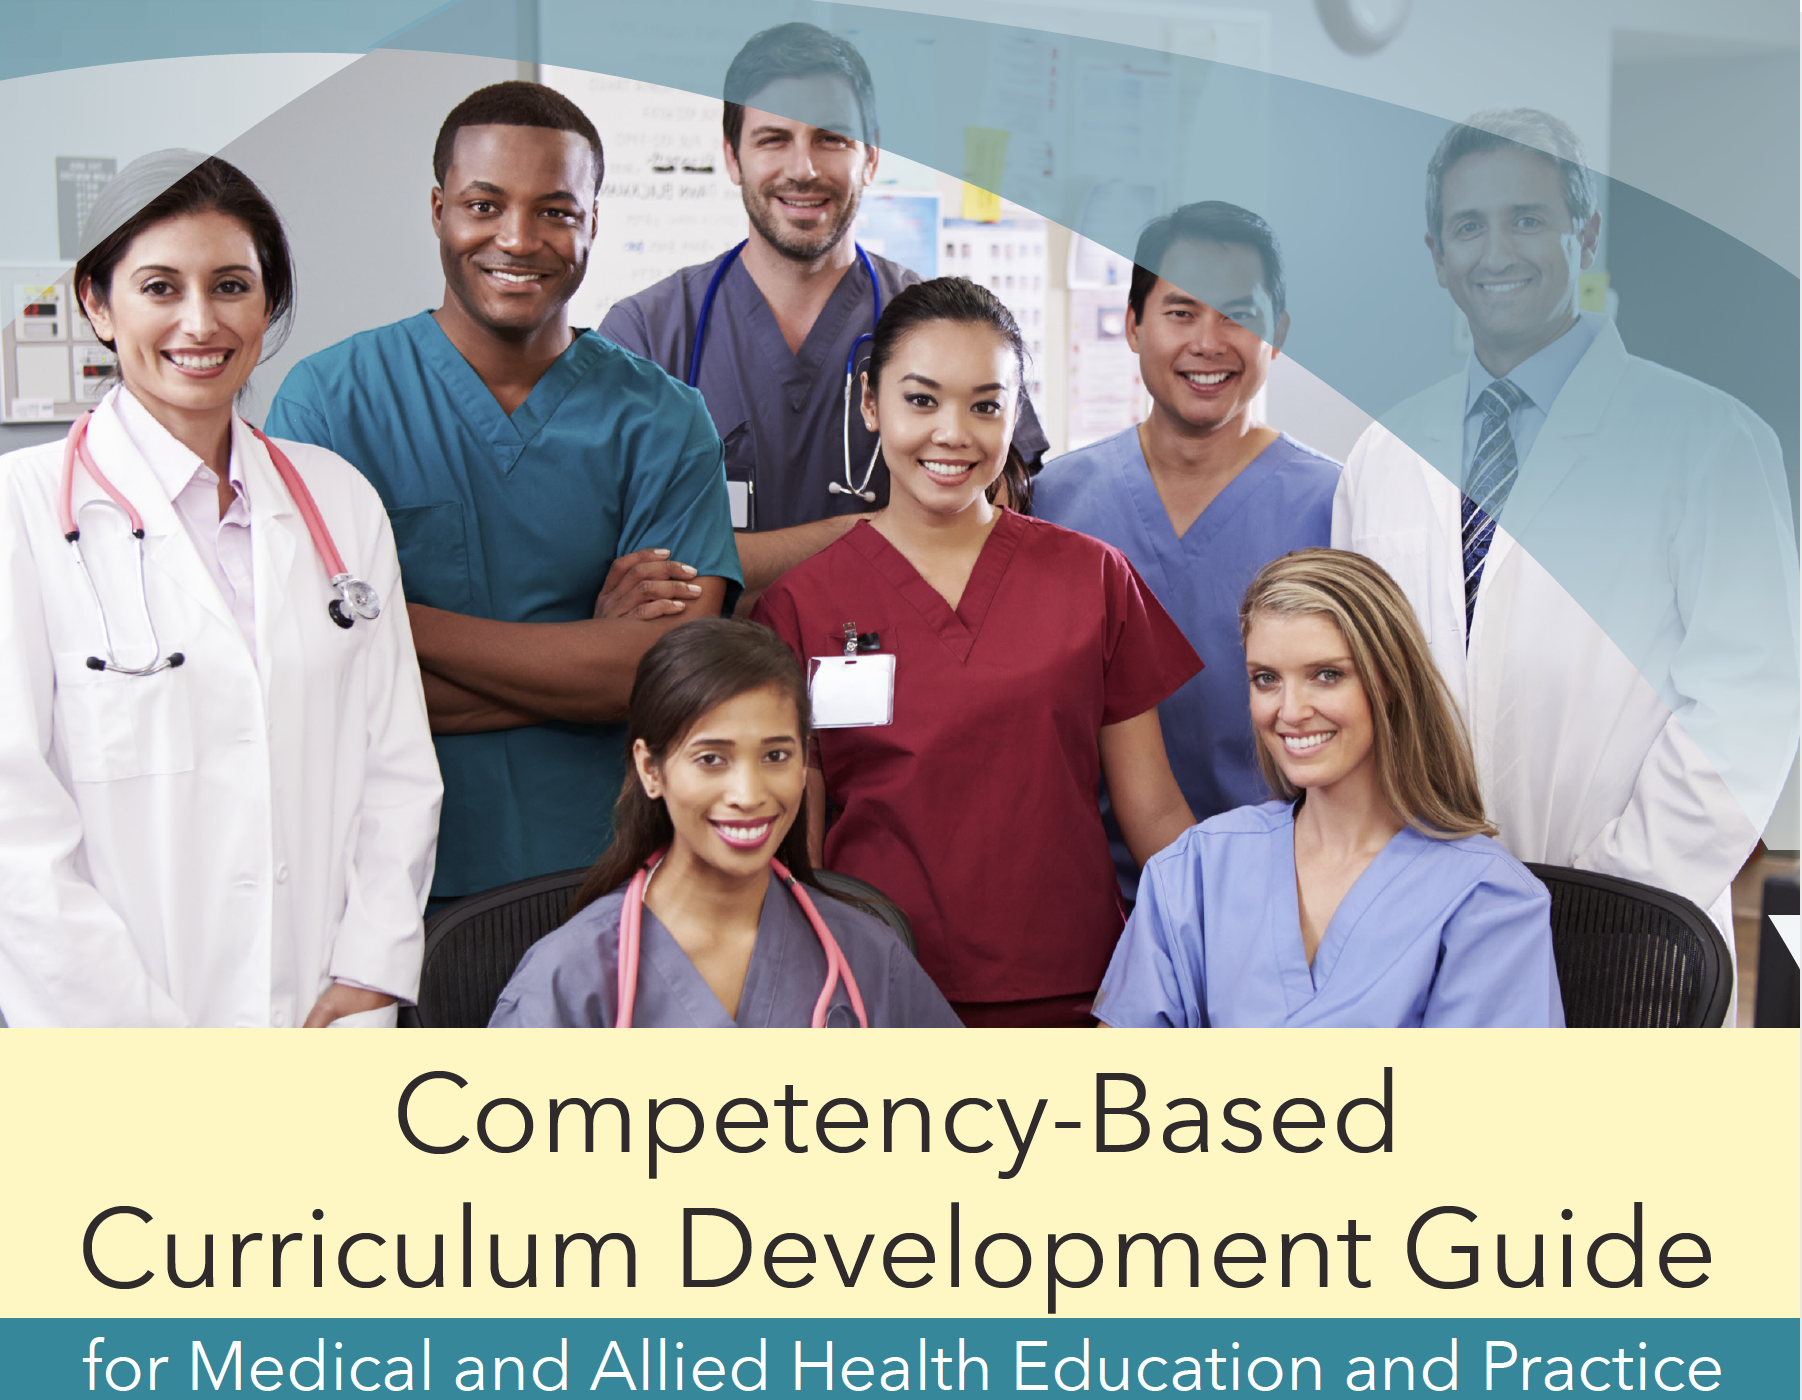 Competency-Based Curriculum Development Guide